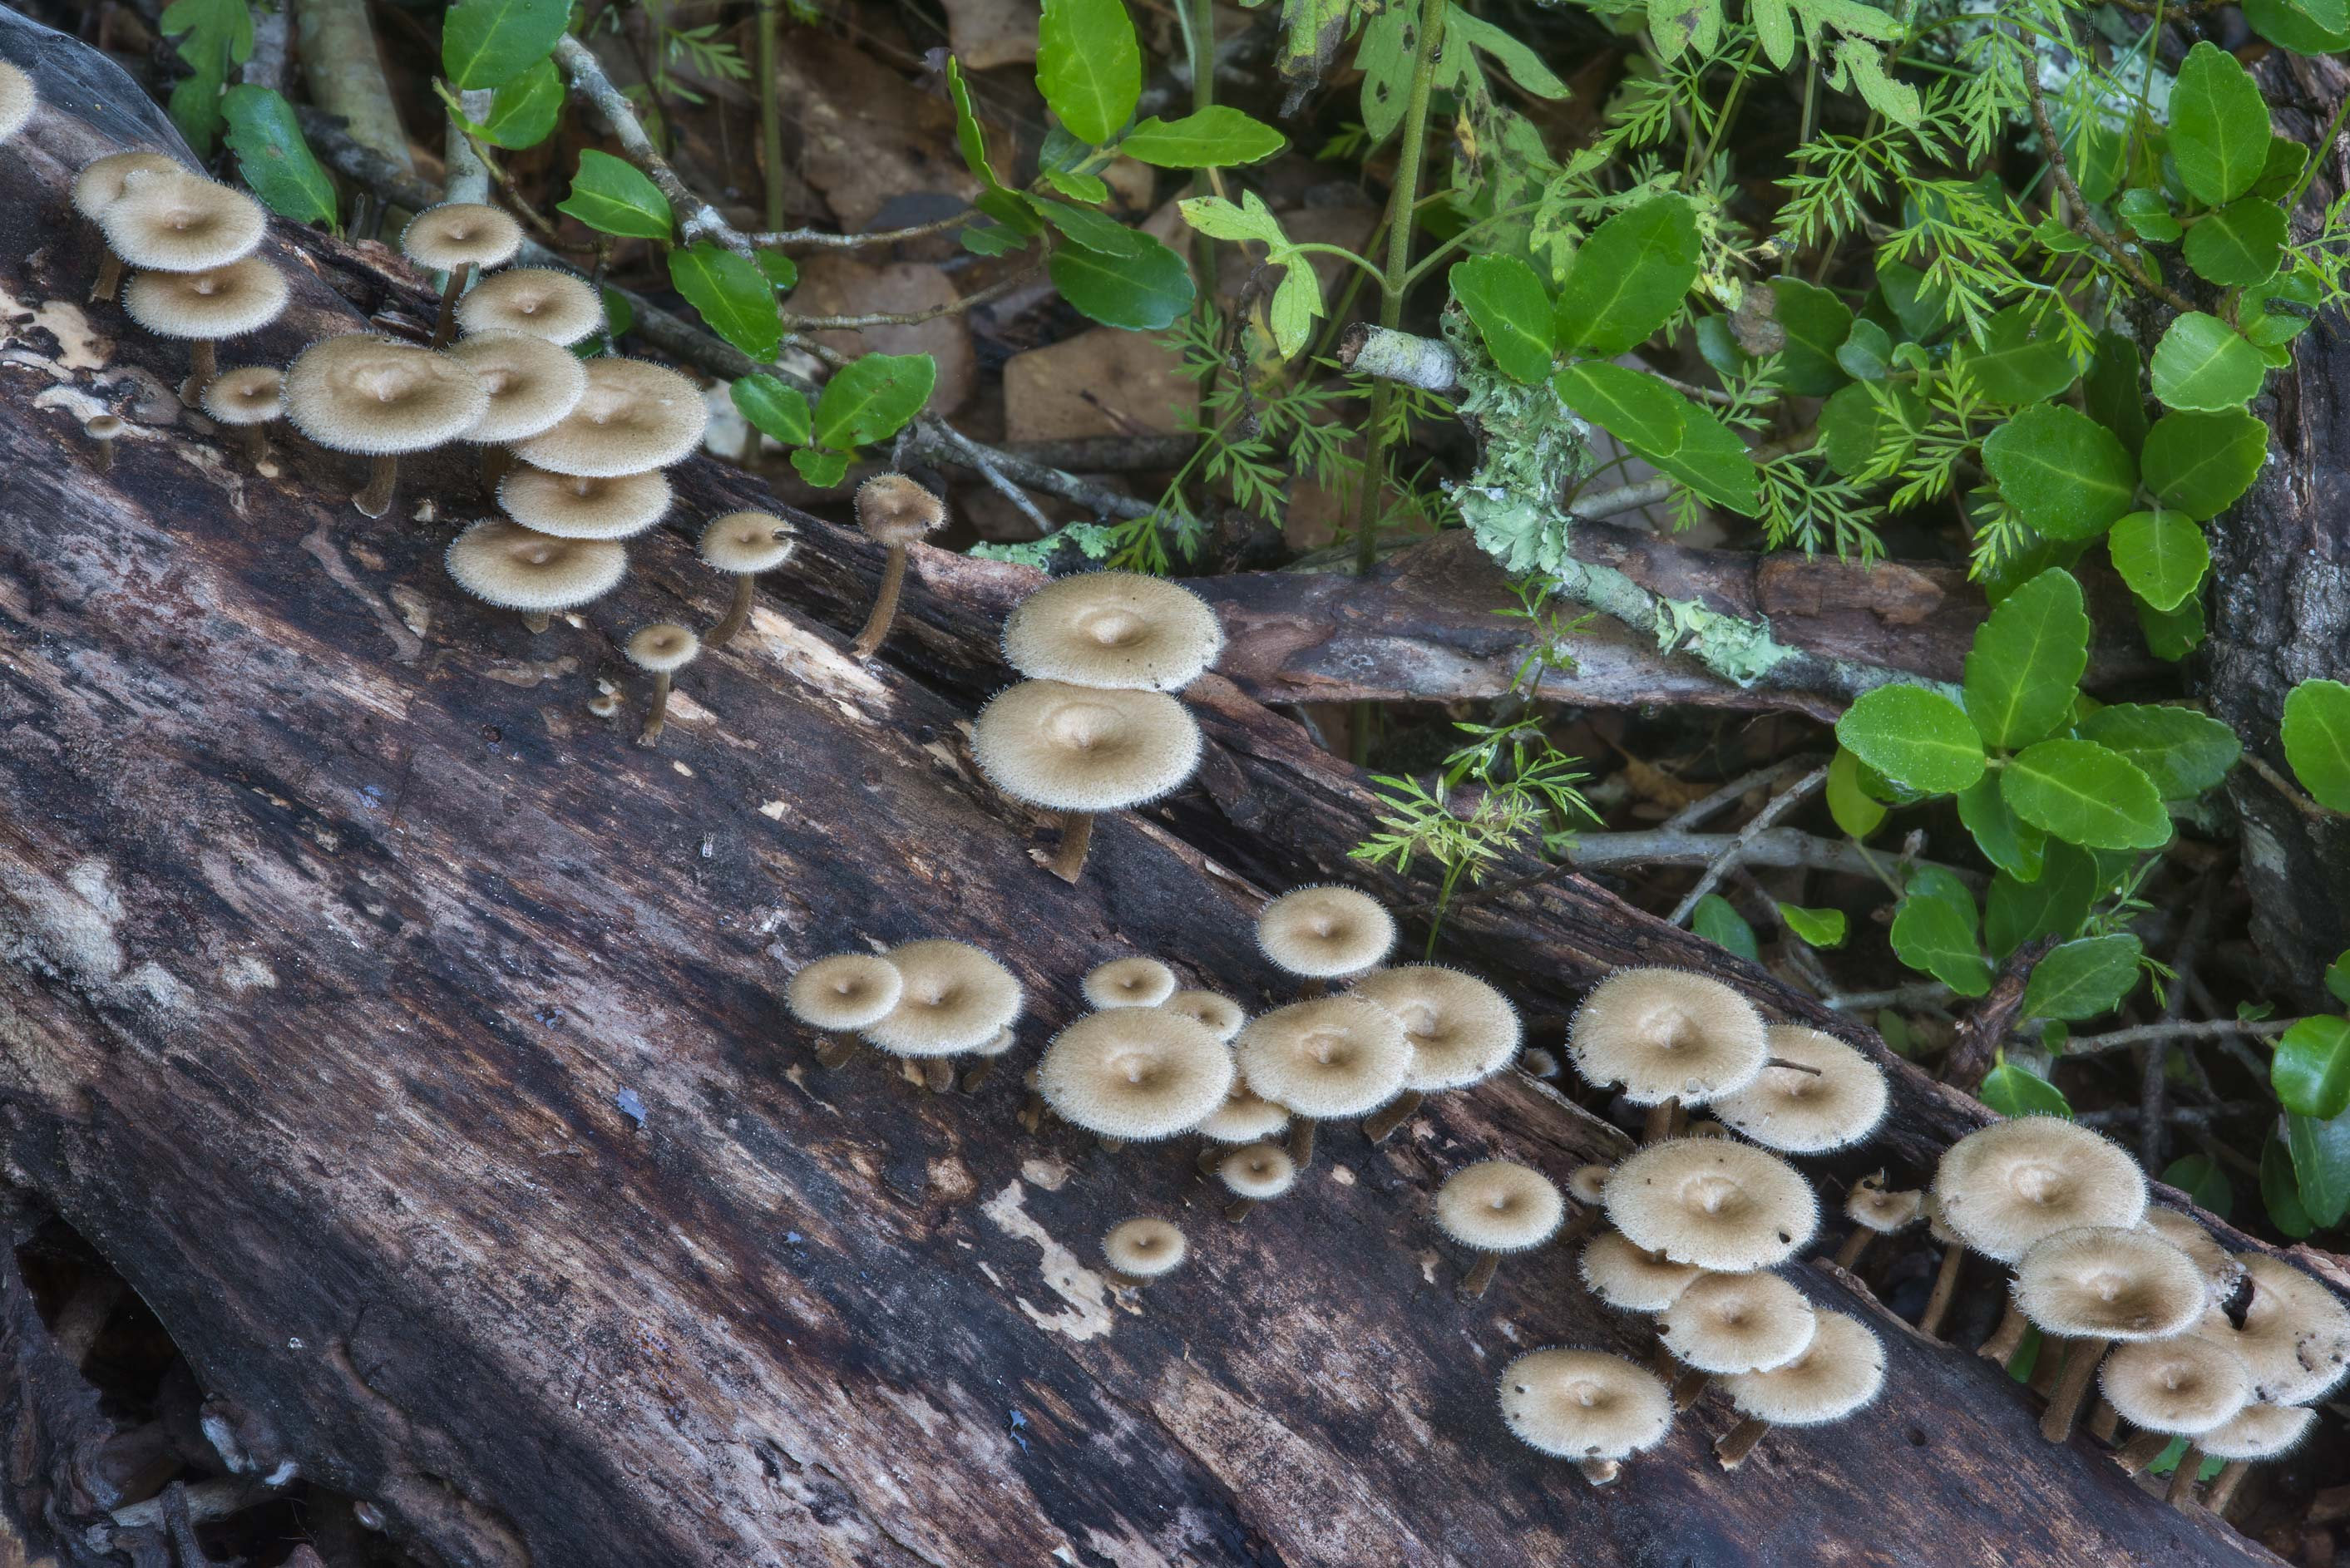 Lentinus crinitus mushrooms on an oak log in Lick Creek Park. College Station, Texas